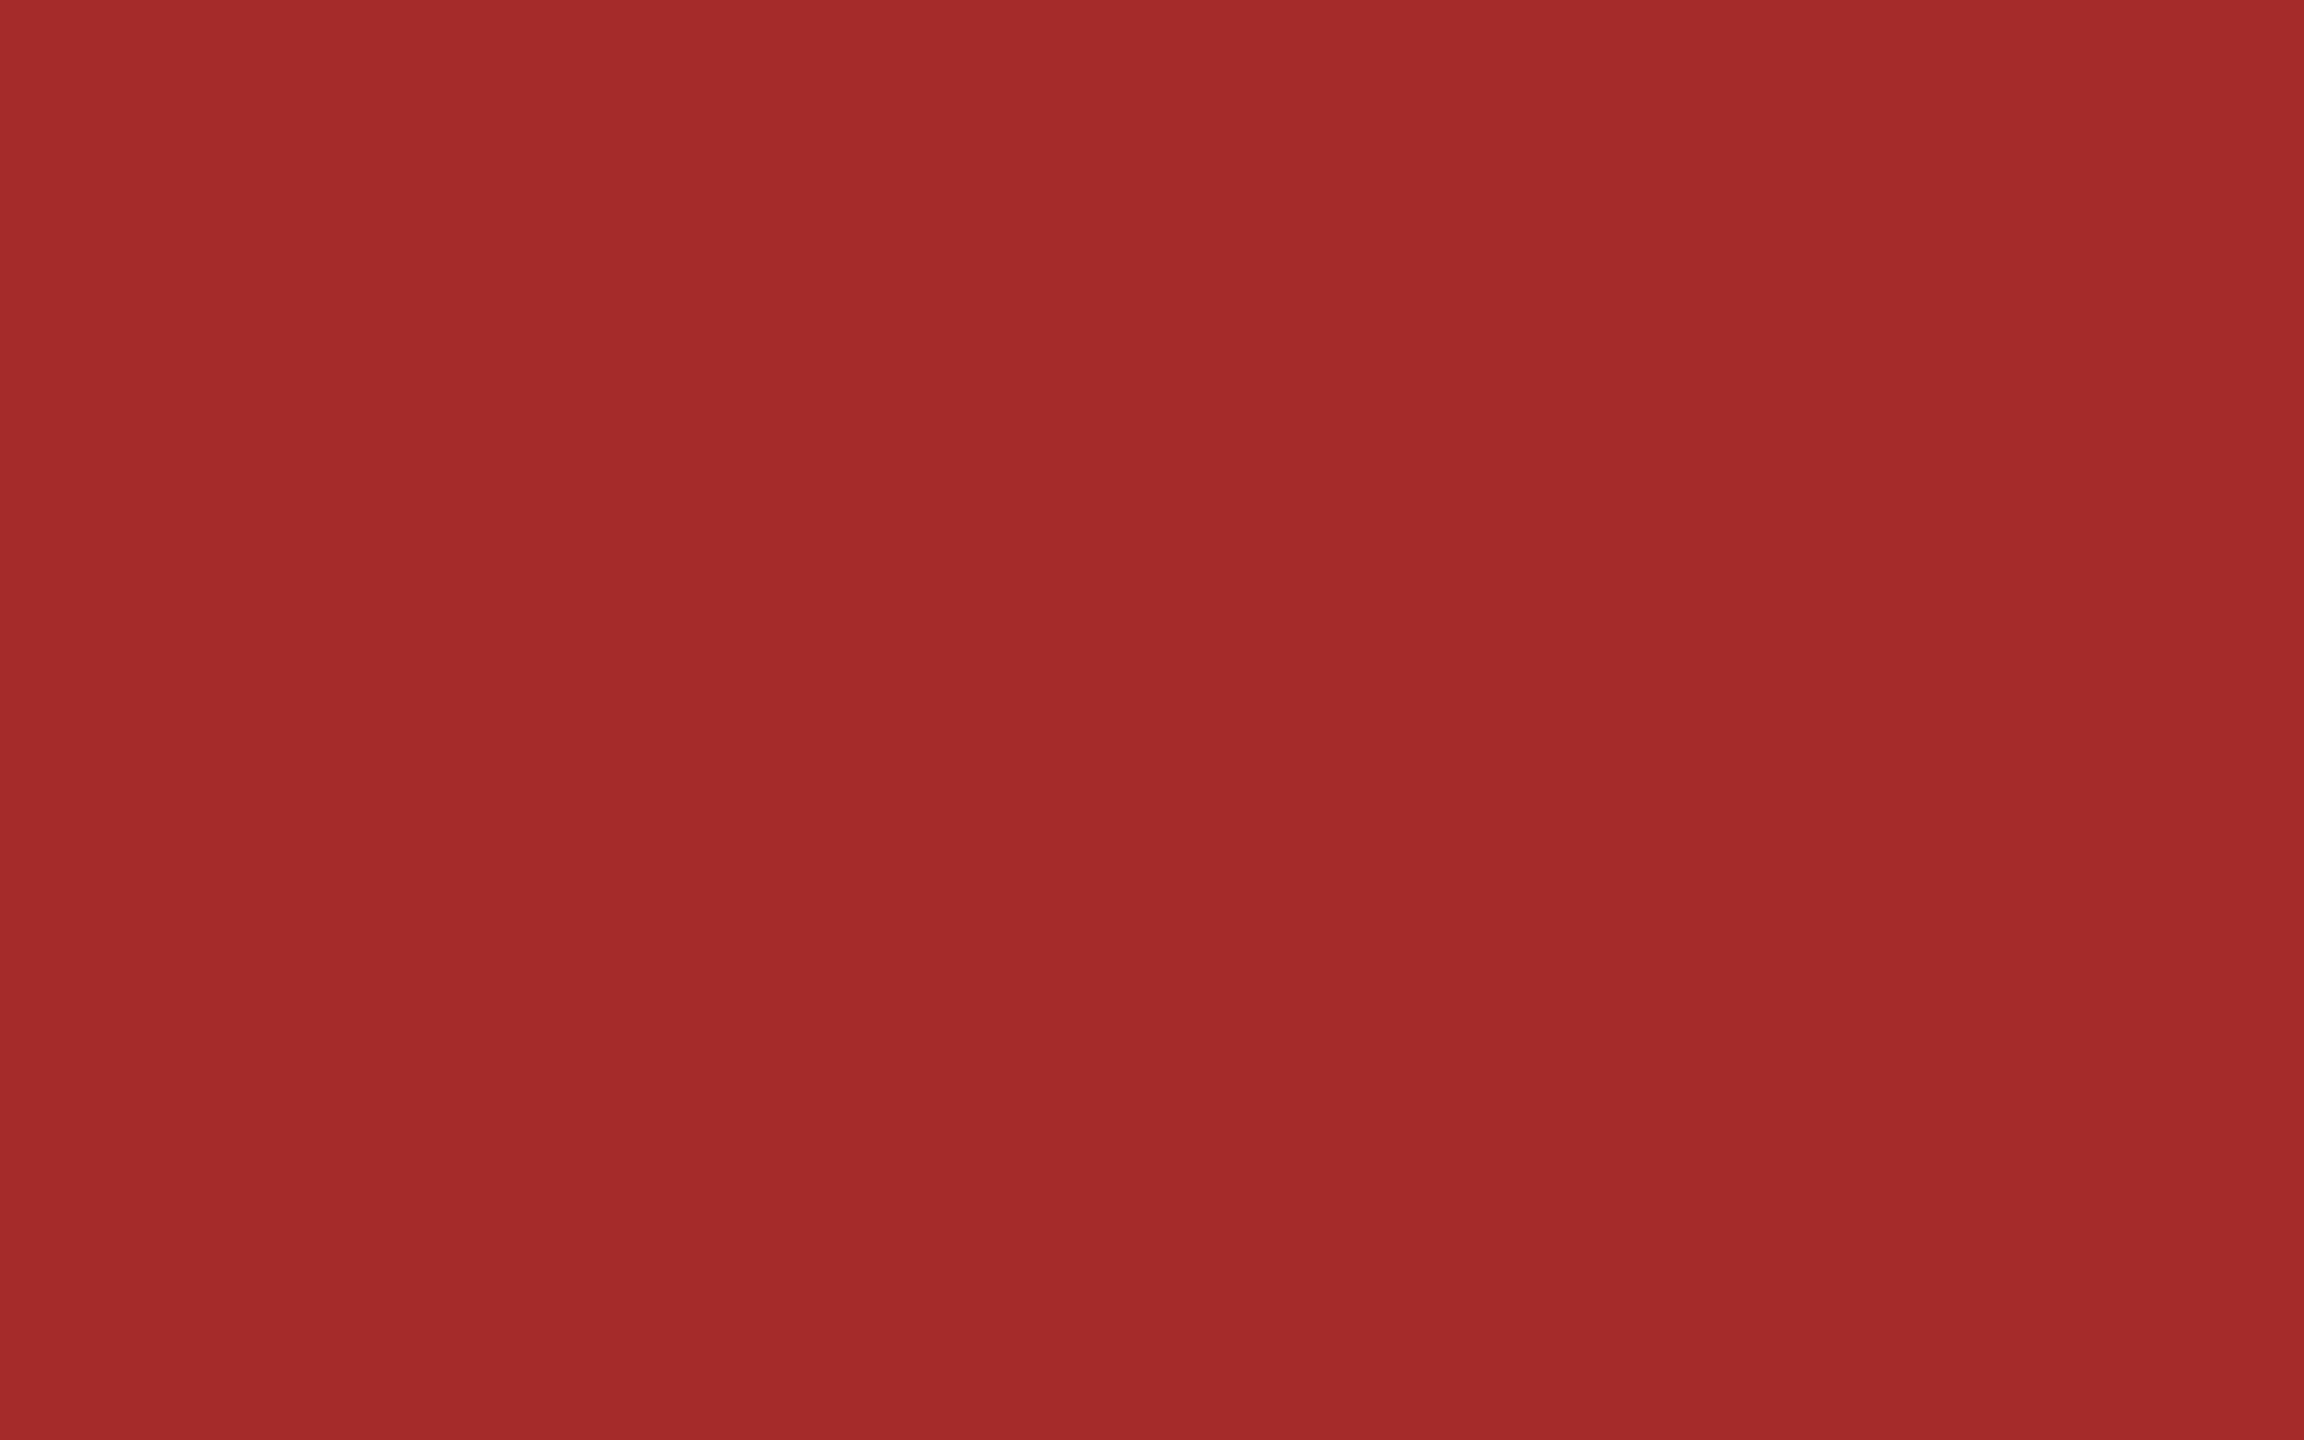 2304x1440 Red-brown Solid Color Background